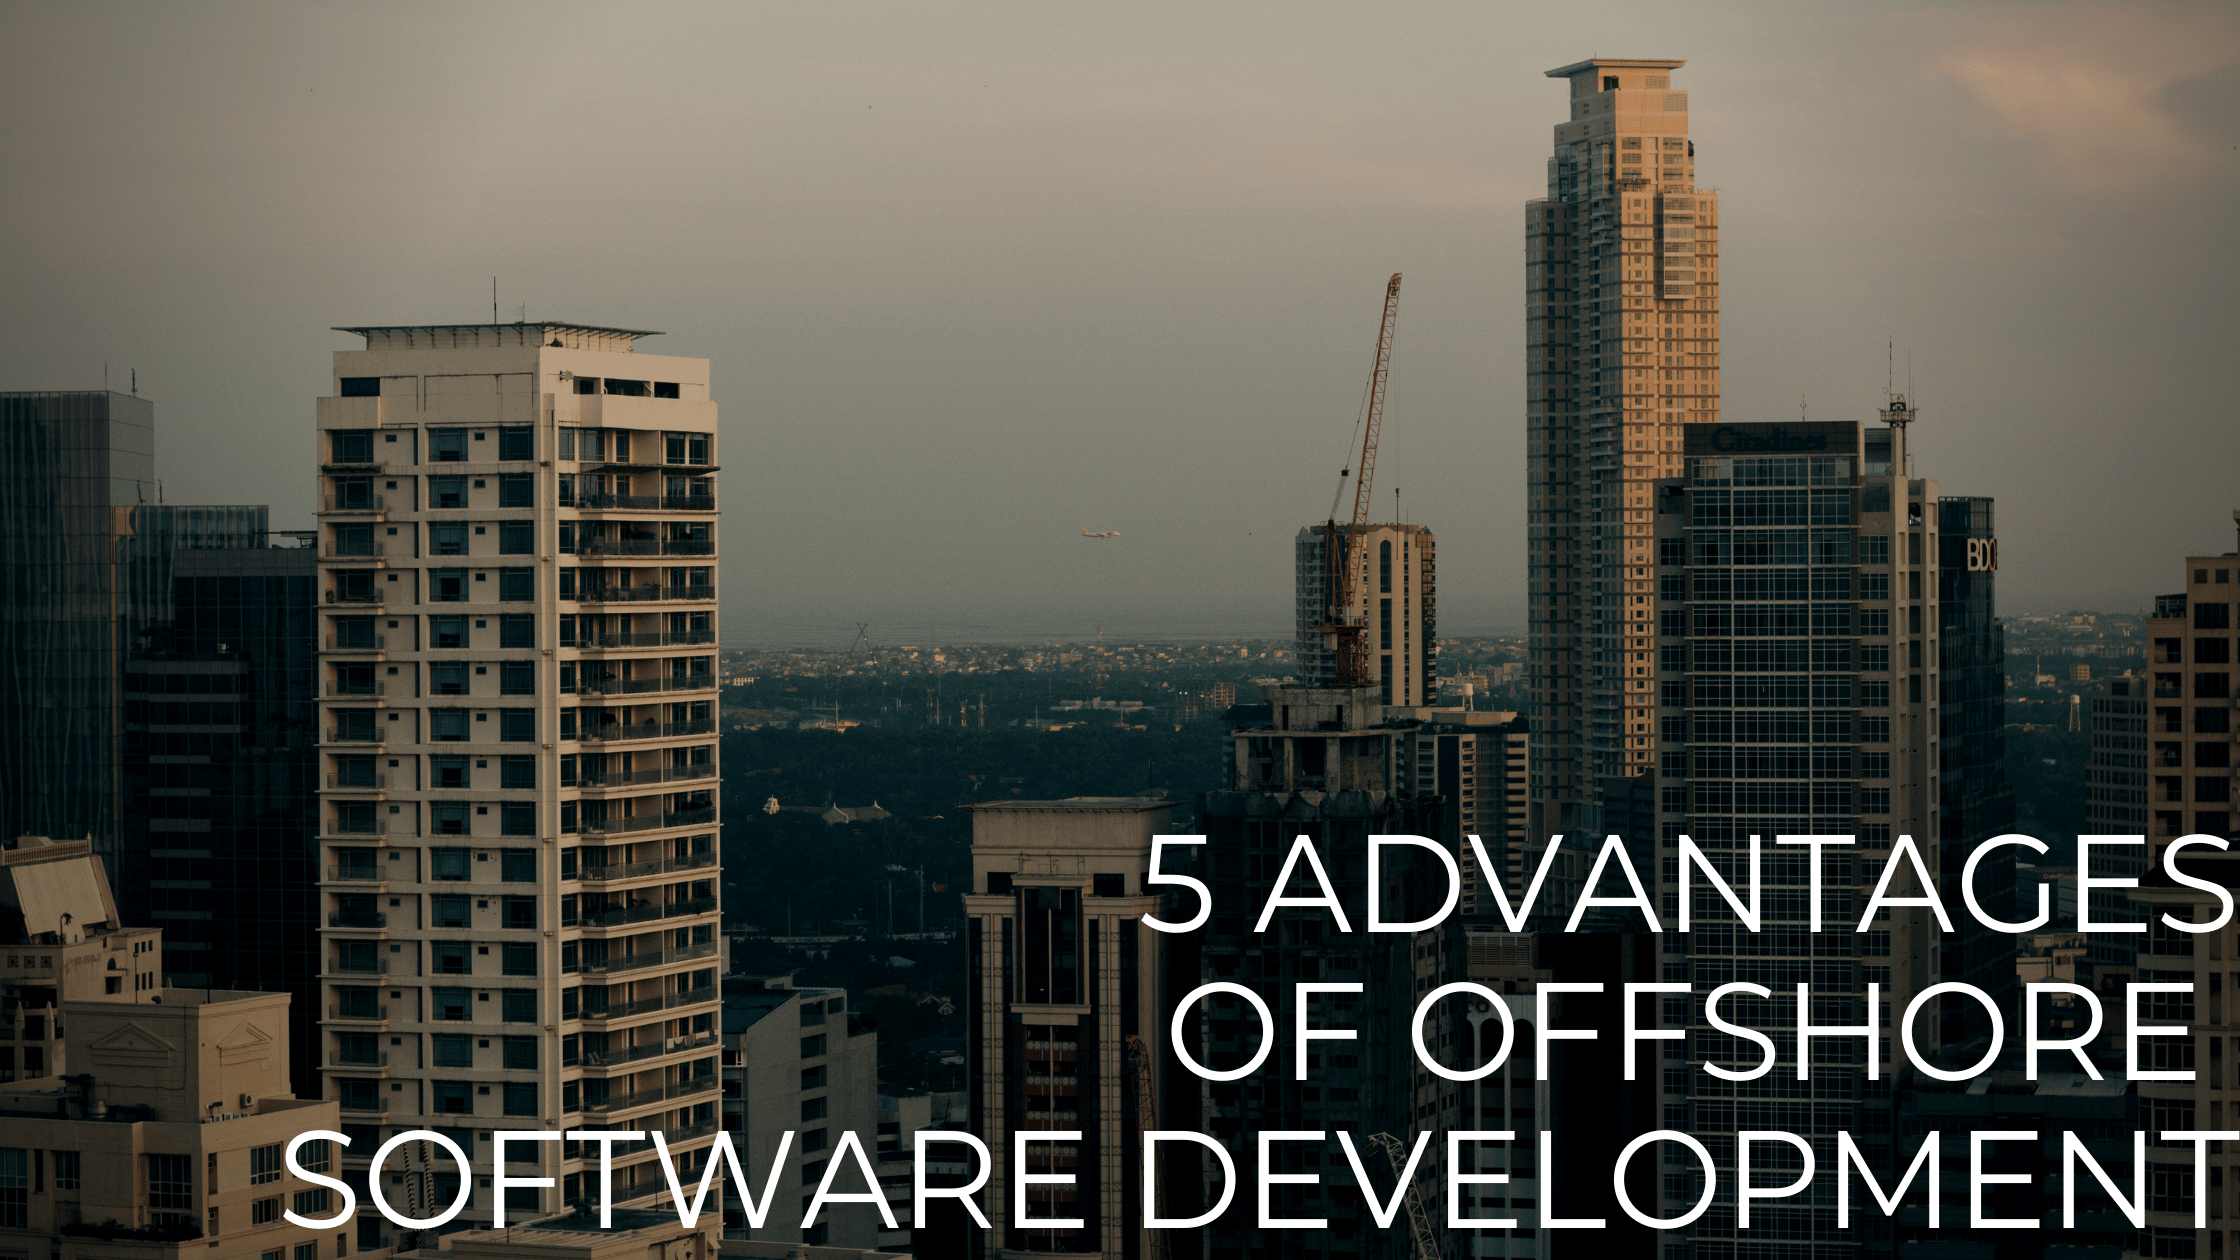 5 Advantages of Offshore Software Development